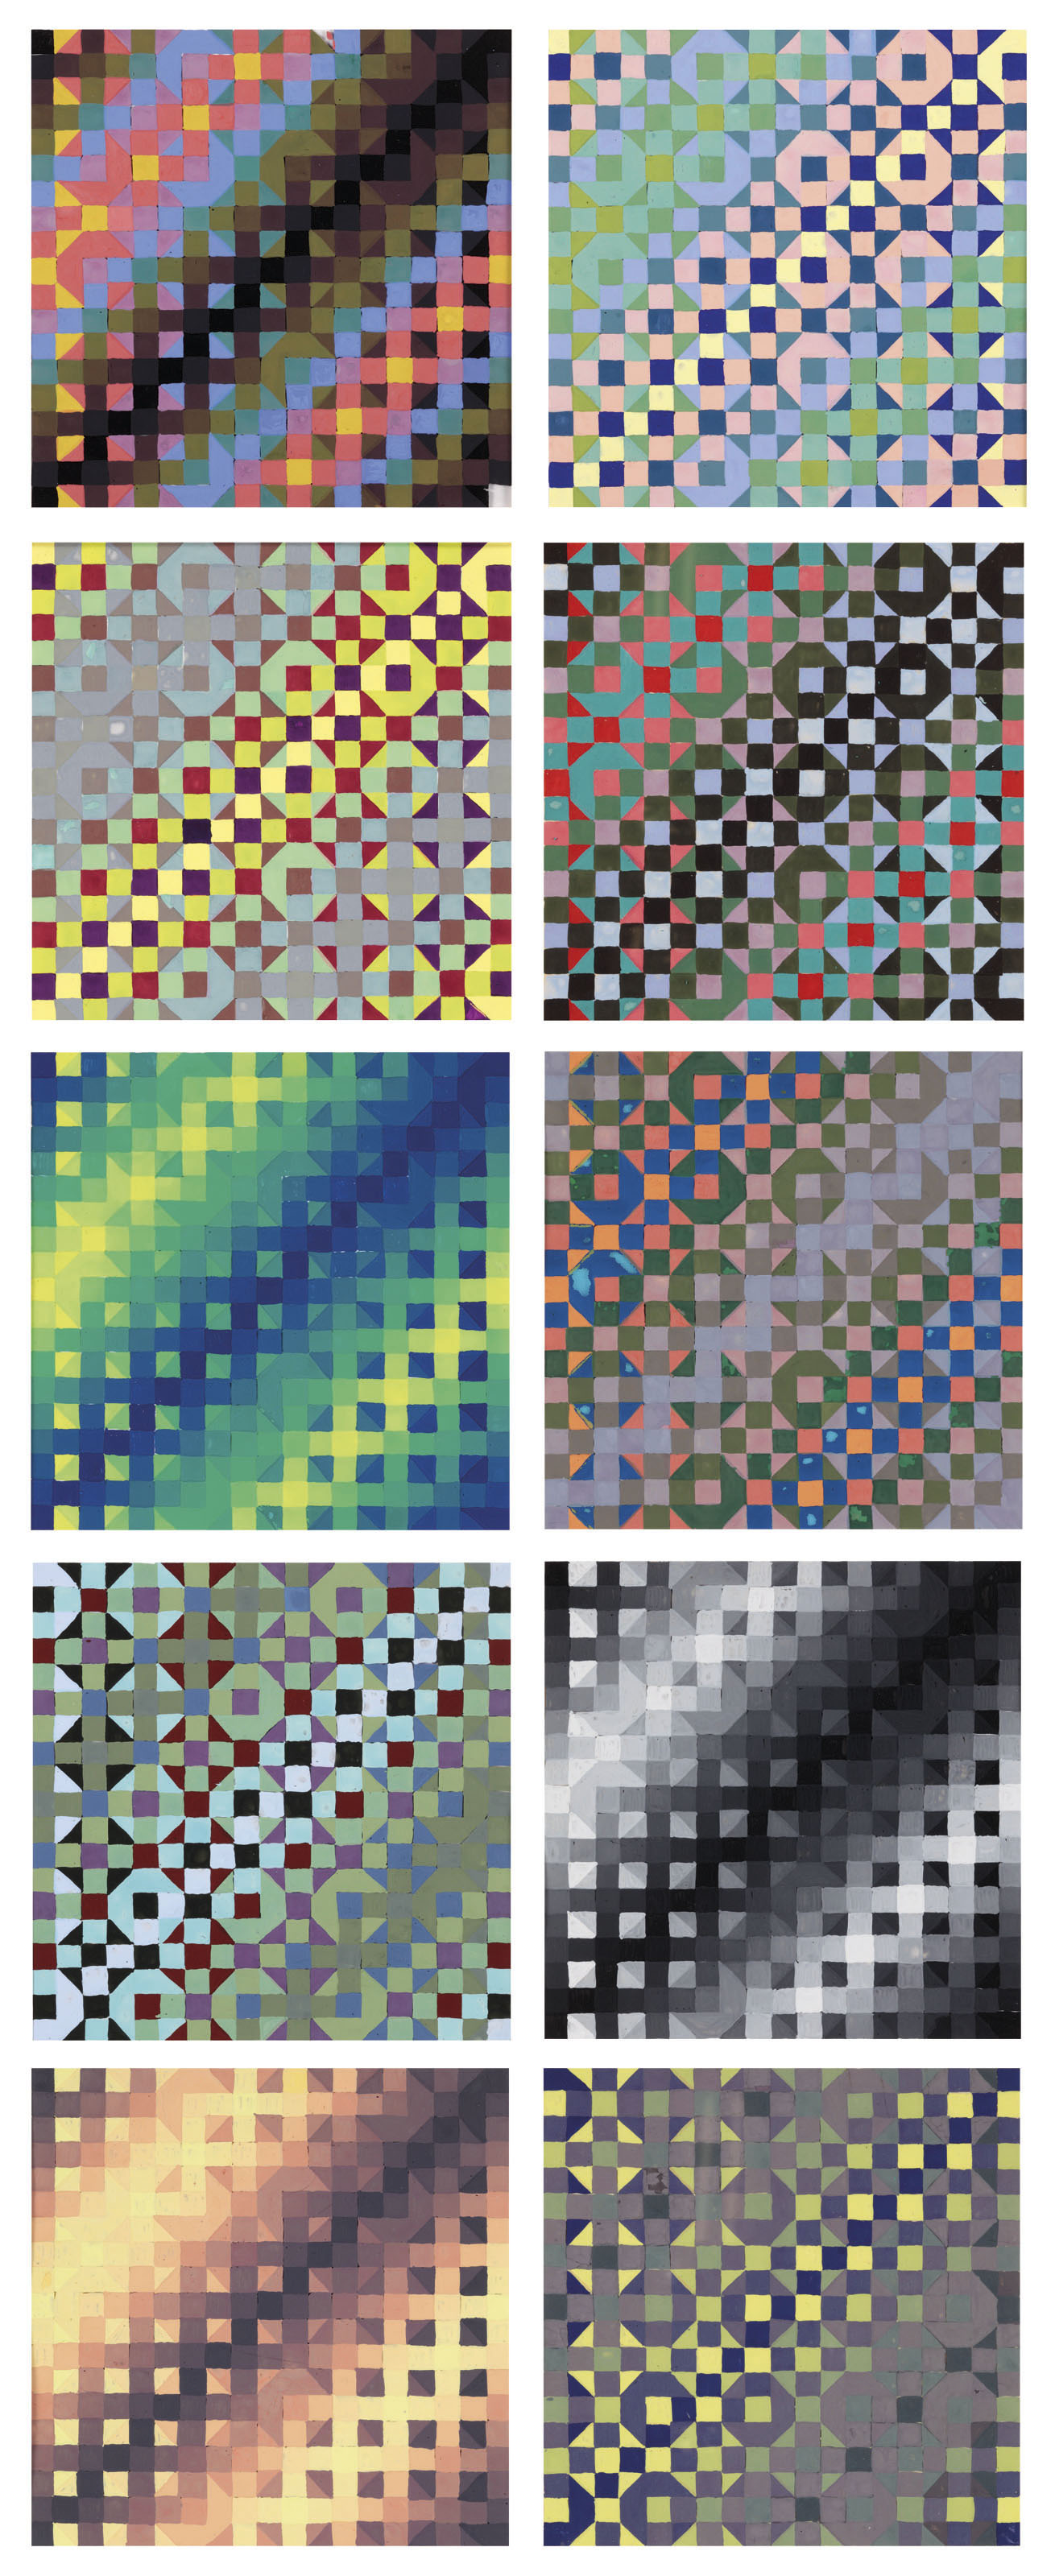 Untitled (Studies for Structure)